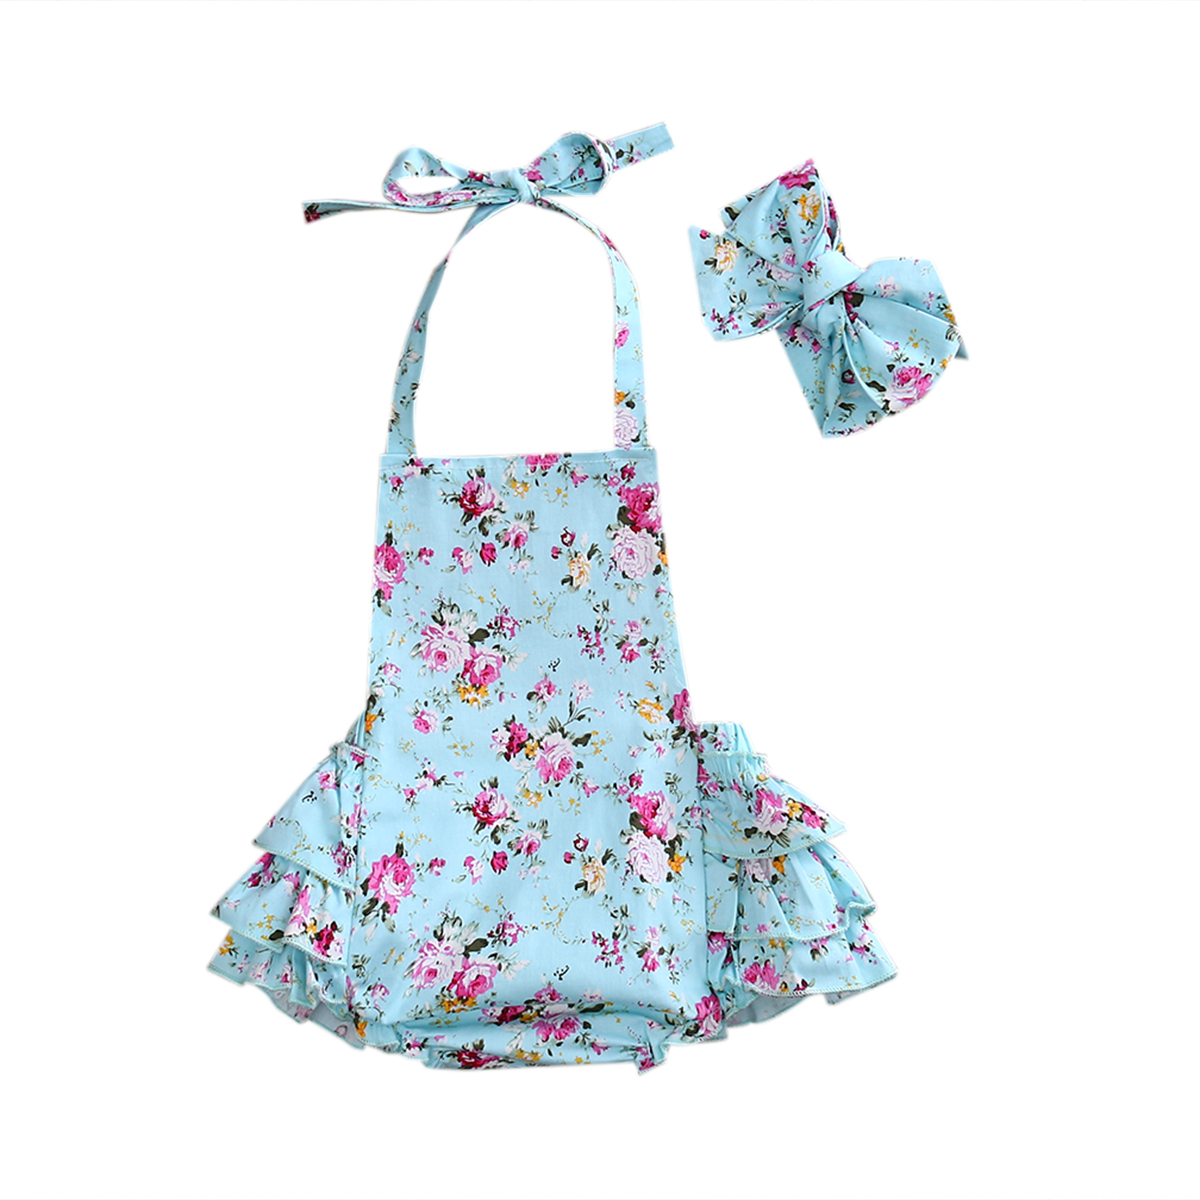 2017 Toddler Kids Infant Baby Clothes Girl Backless Floral Strap Romper Jumpsuit Cute Baby Girl Clothes Baby Onesie Outfit 2017 toddler kids infant baby clothes girl backless floral strap romper jumpsuit cute baby girl clothes baby onesie outfit